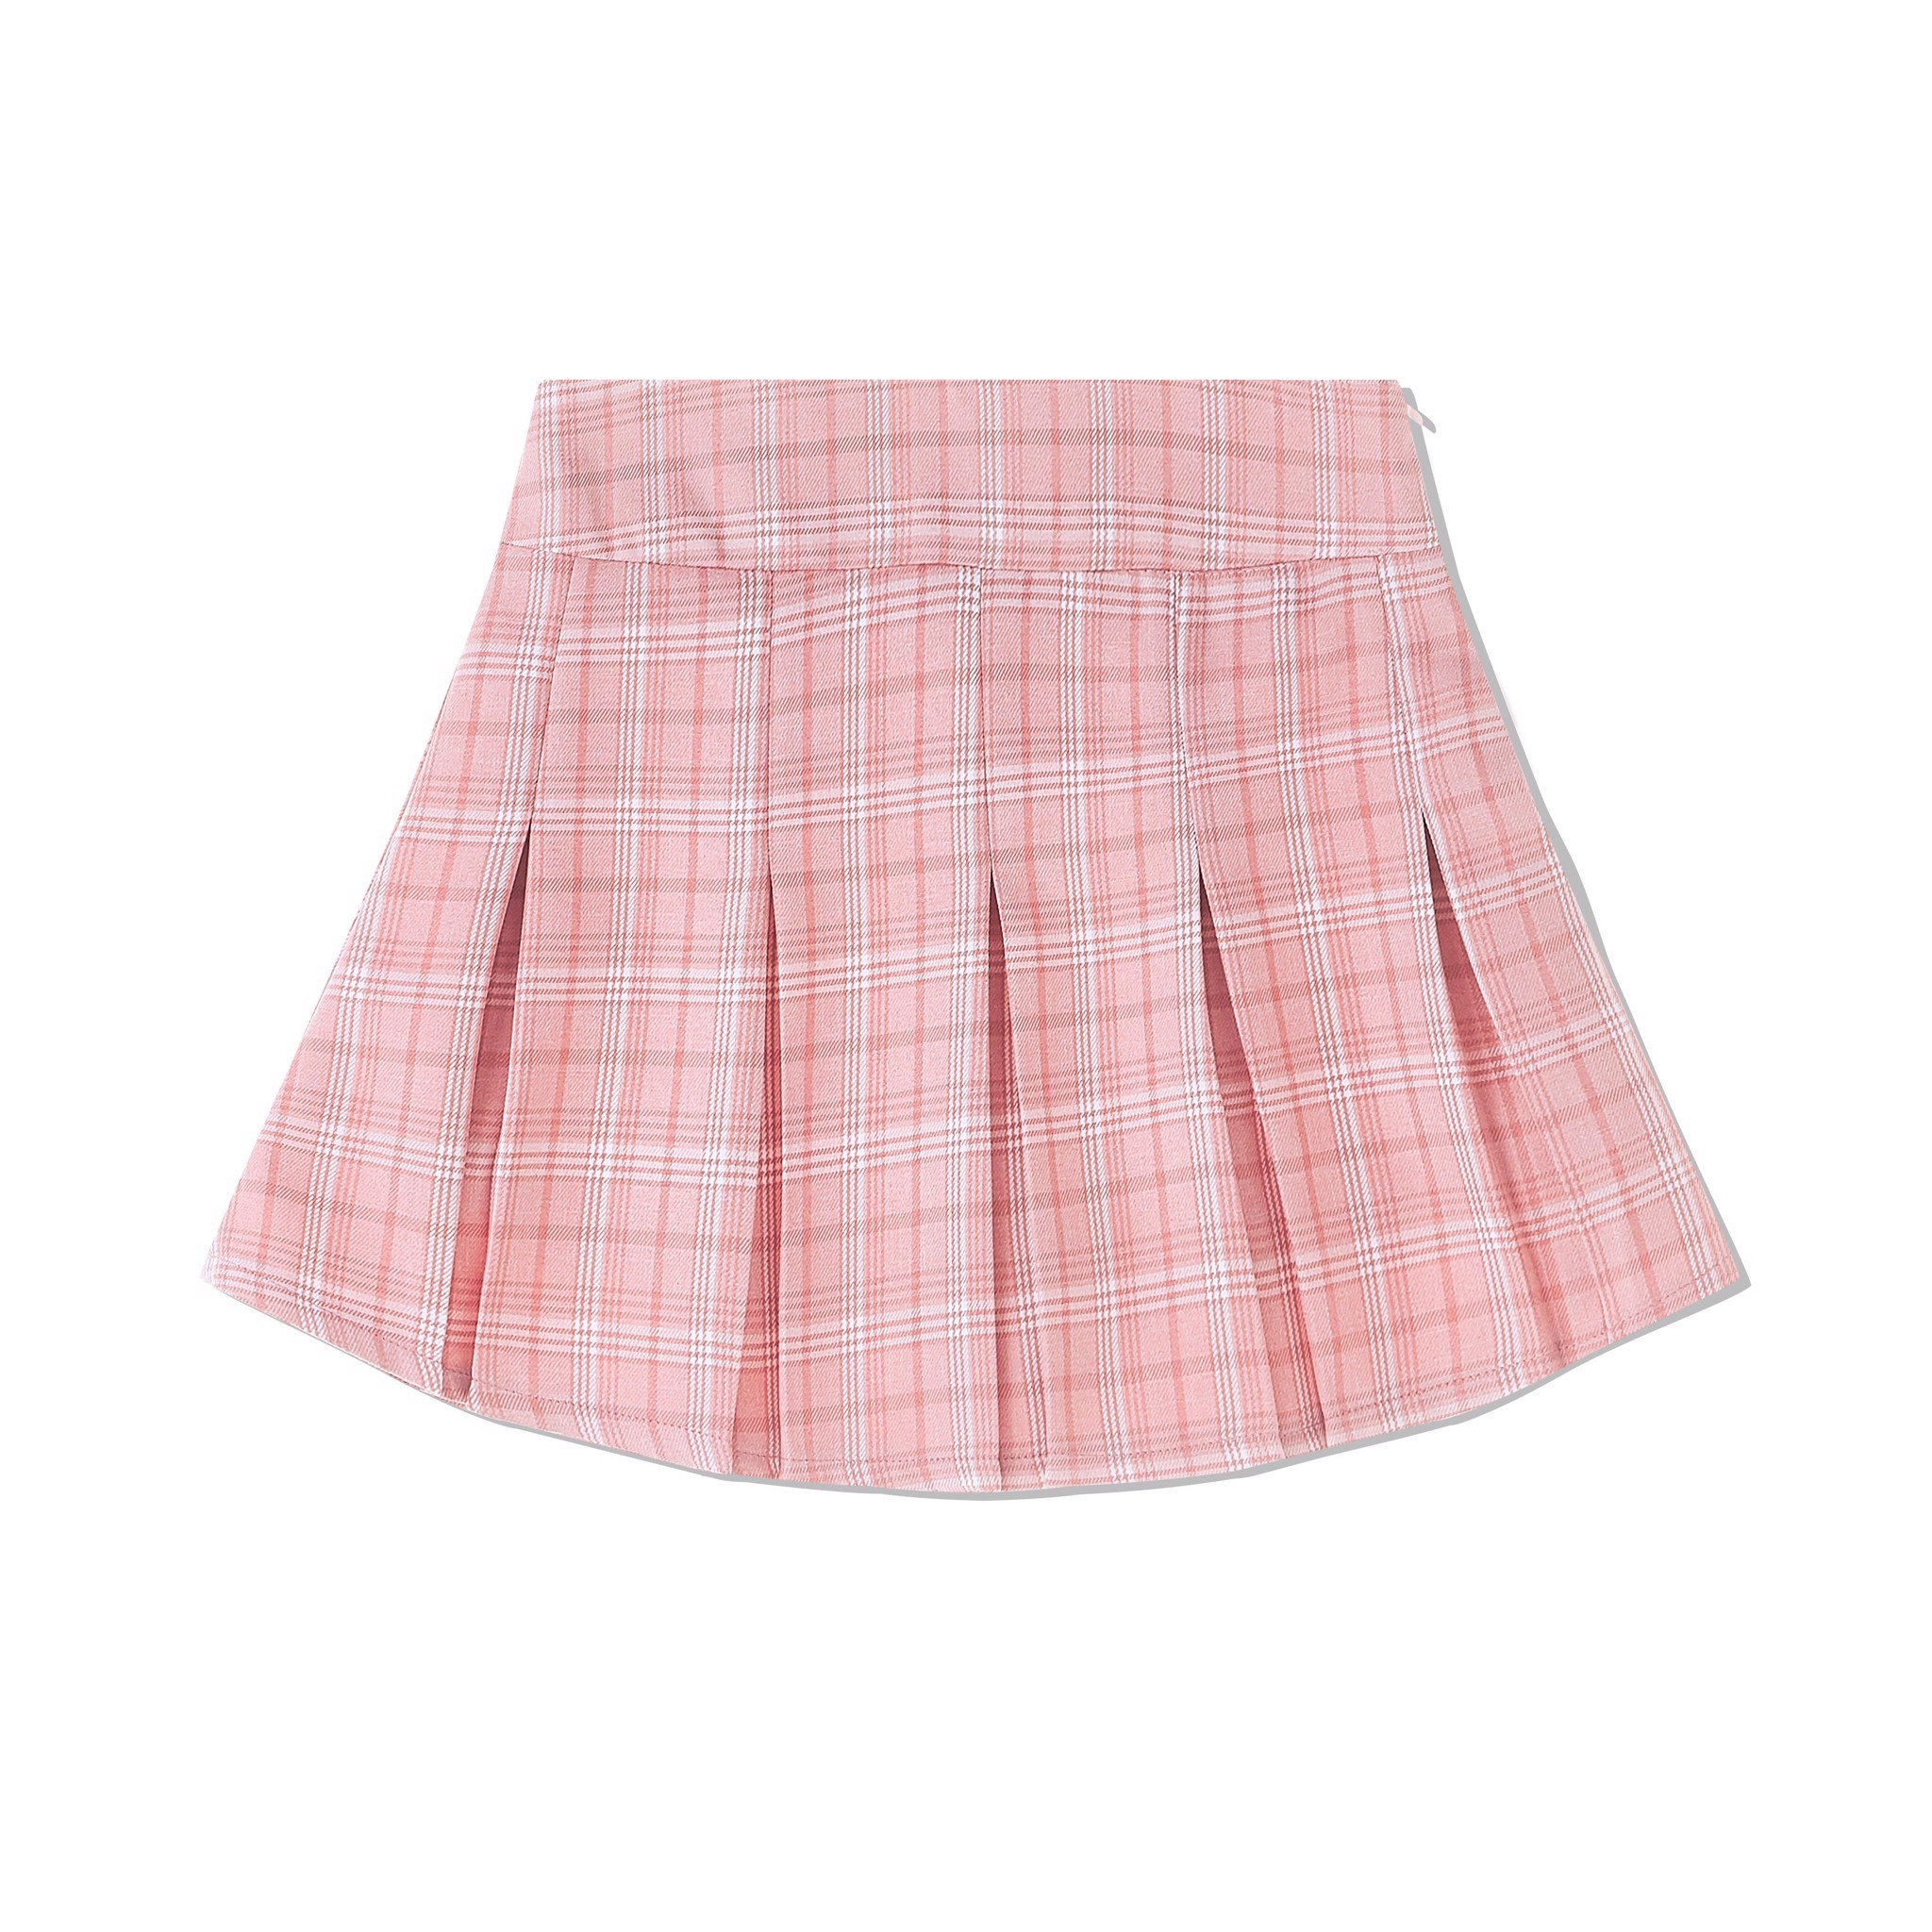 90's PLEATED SKIRT PINK